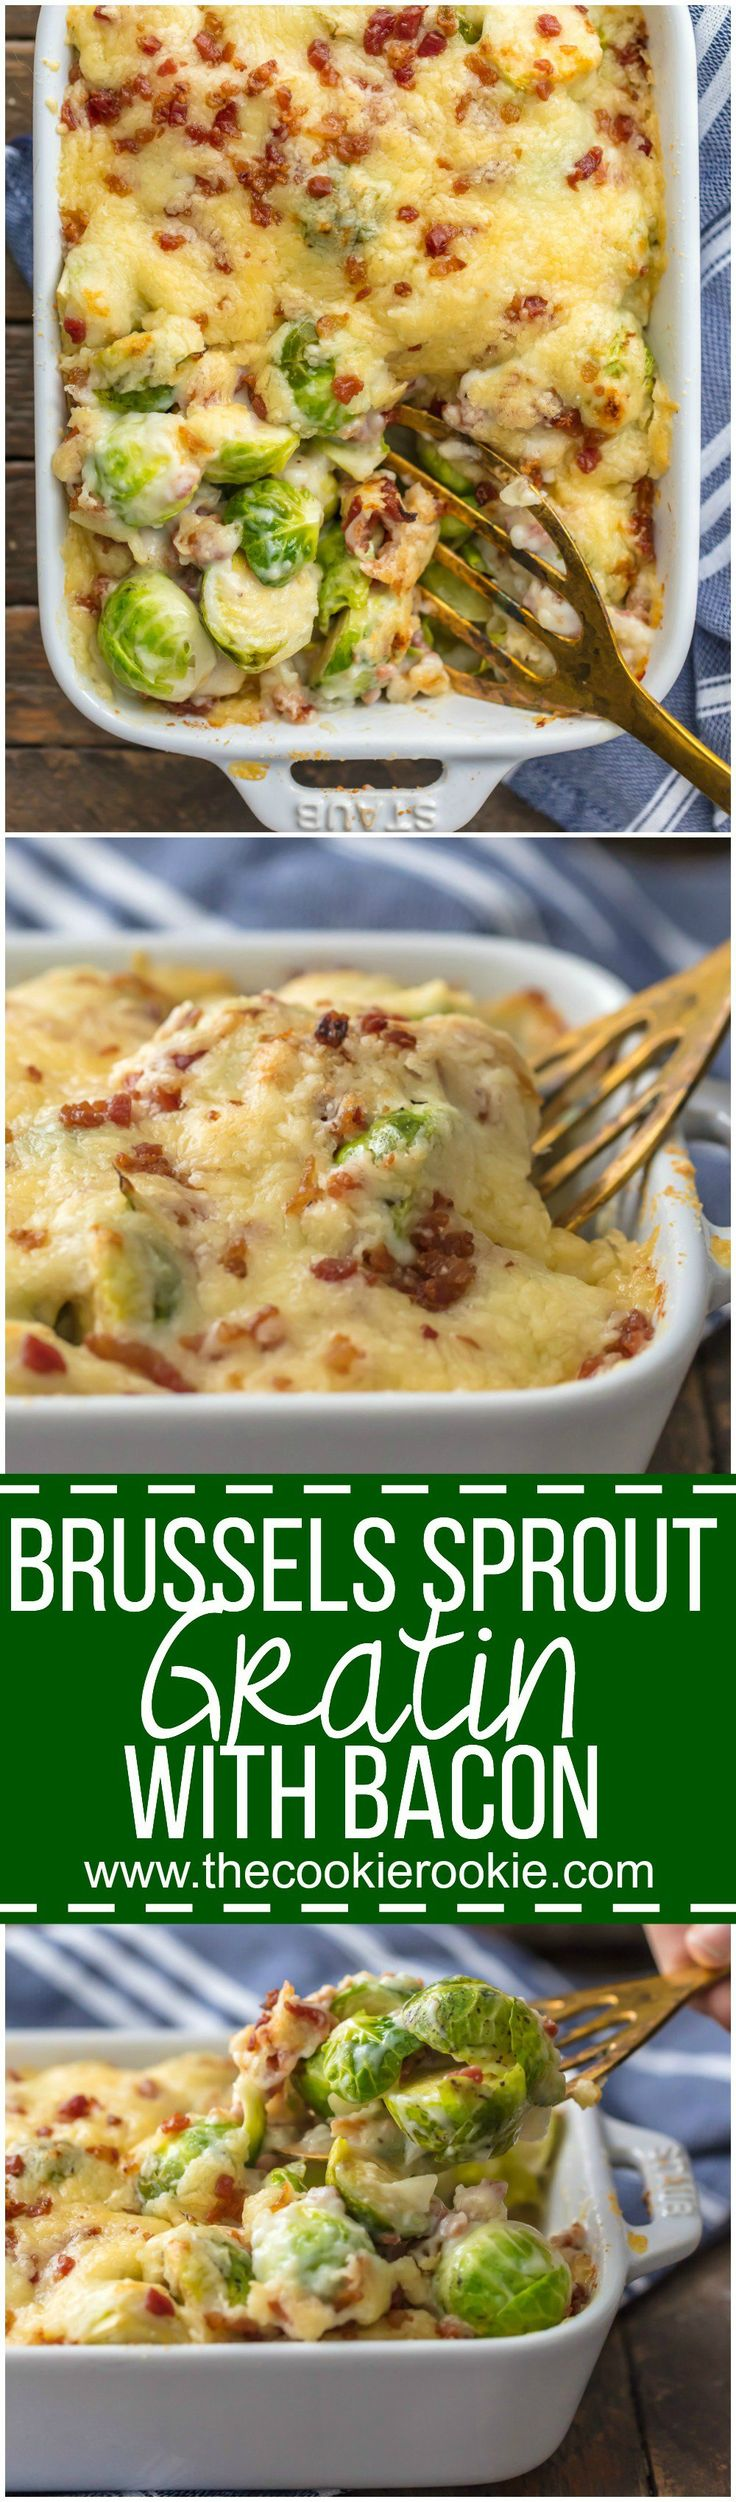 BRUSSELS SPROUT GRATIN with BACON is the ultimate holiday side dish! Who can resist brussels sprouts when sprinkled with bacon and SO MUCH CHEESE! The cream sauce inside is so easy and delicious, making this a Thanksgiving favorite for our family. #ButterballOnDemand #ad @Butterball